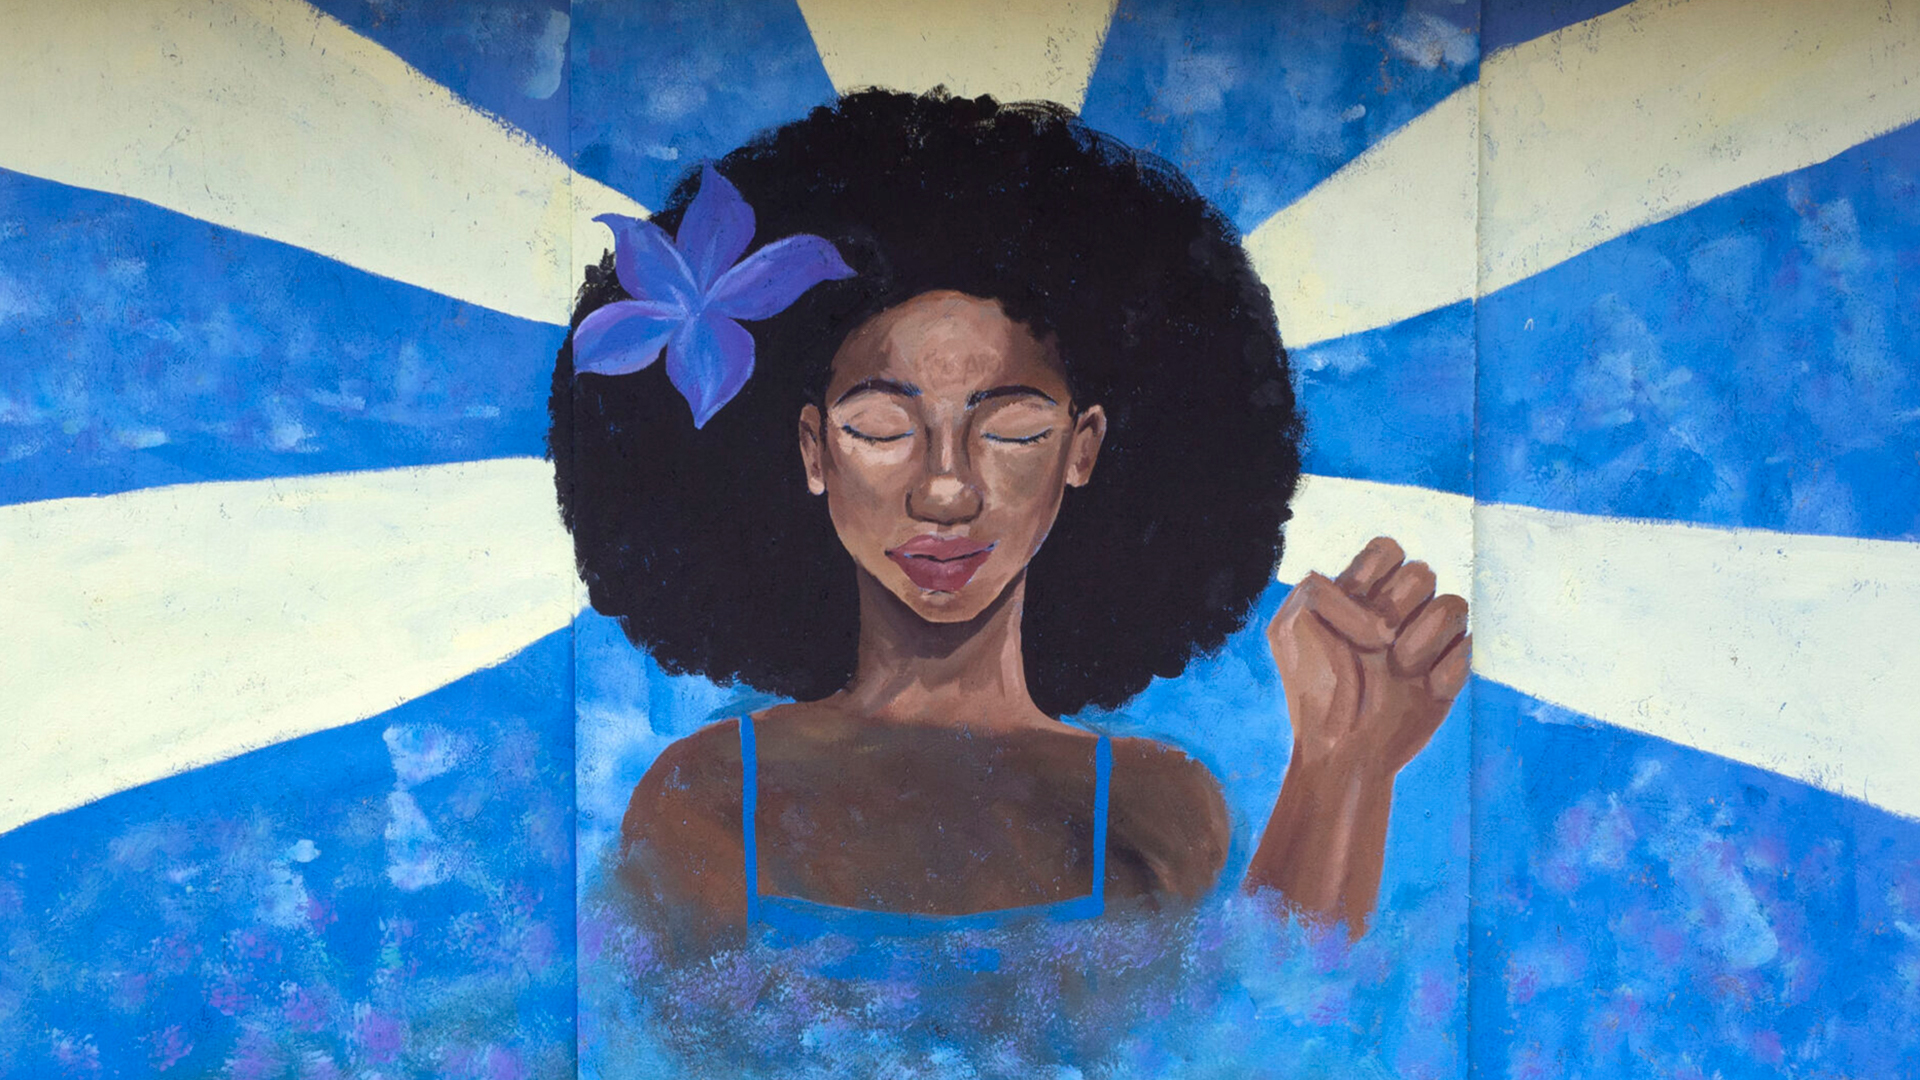 A mural depicting a Black woman with a flower in her hair, her eyes closed peacefully and holding up a Black Power fist